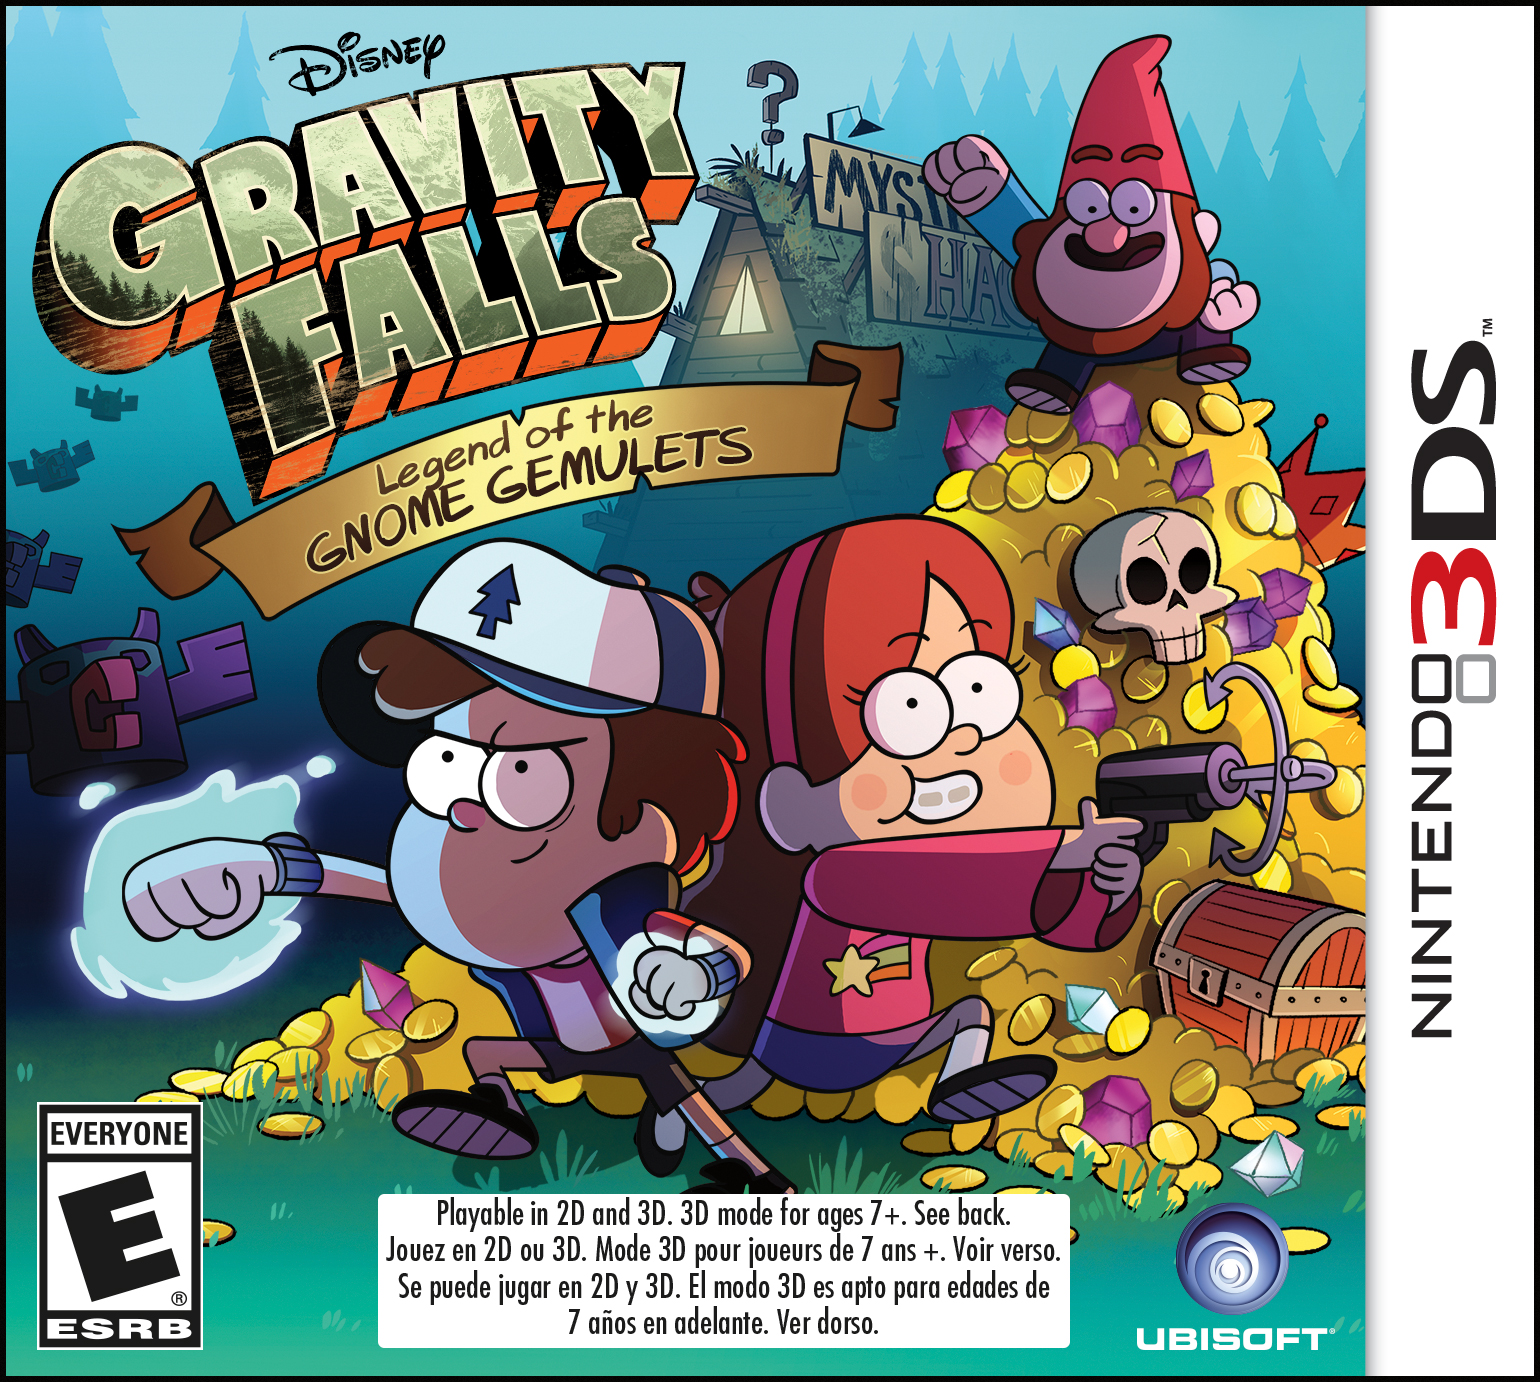 Gravity Falls: Legend of the Gnome Gemulets | Disney LOL